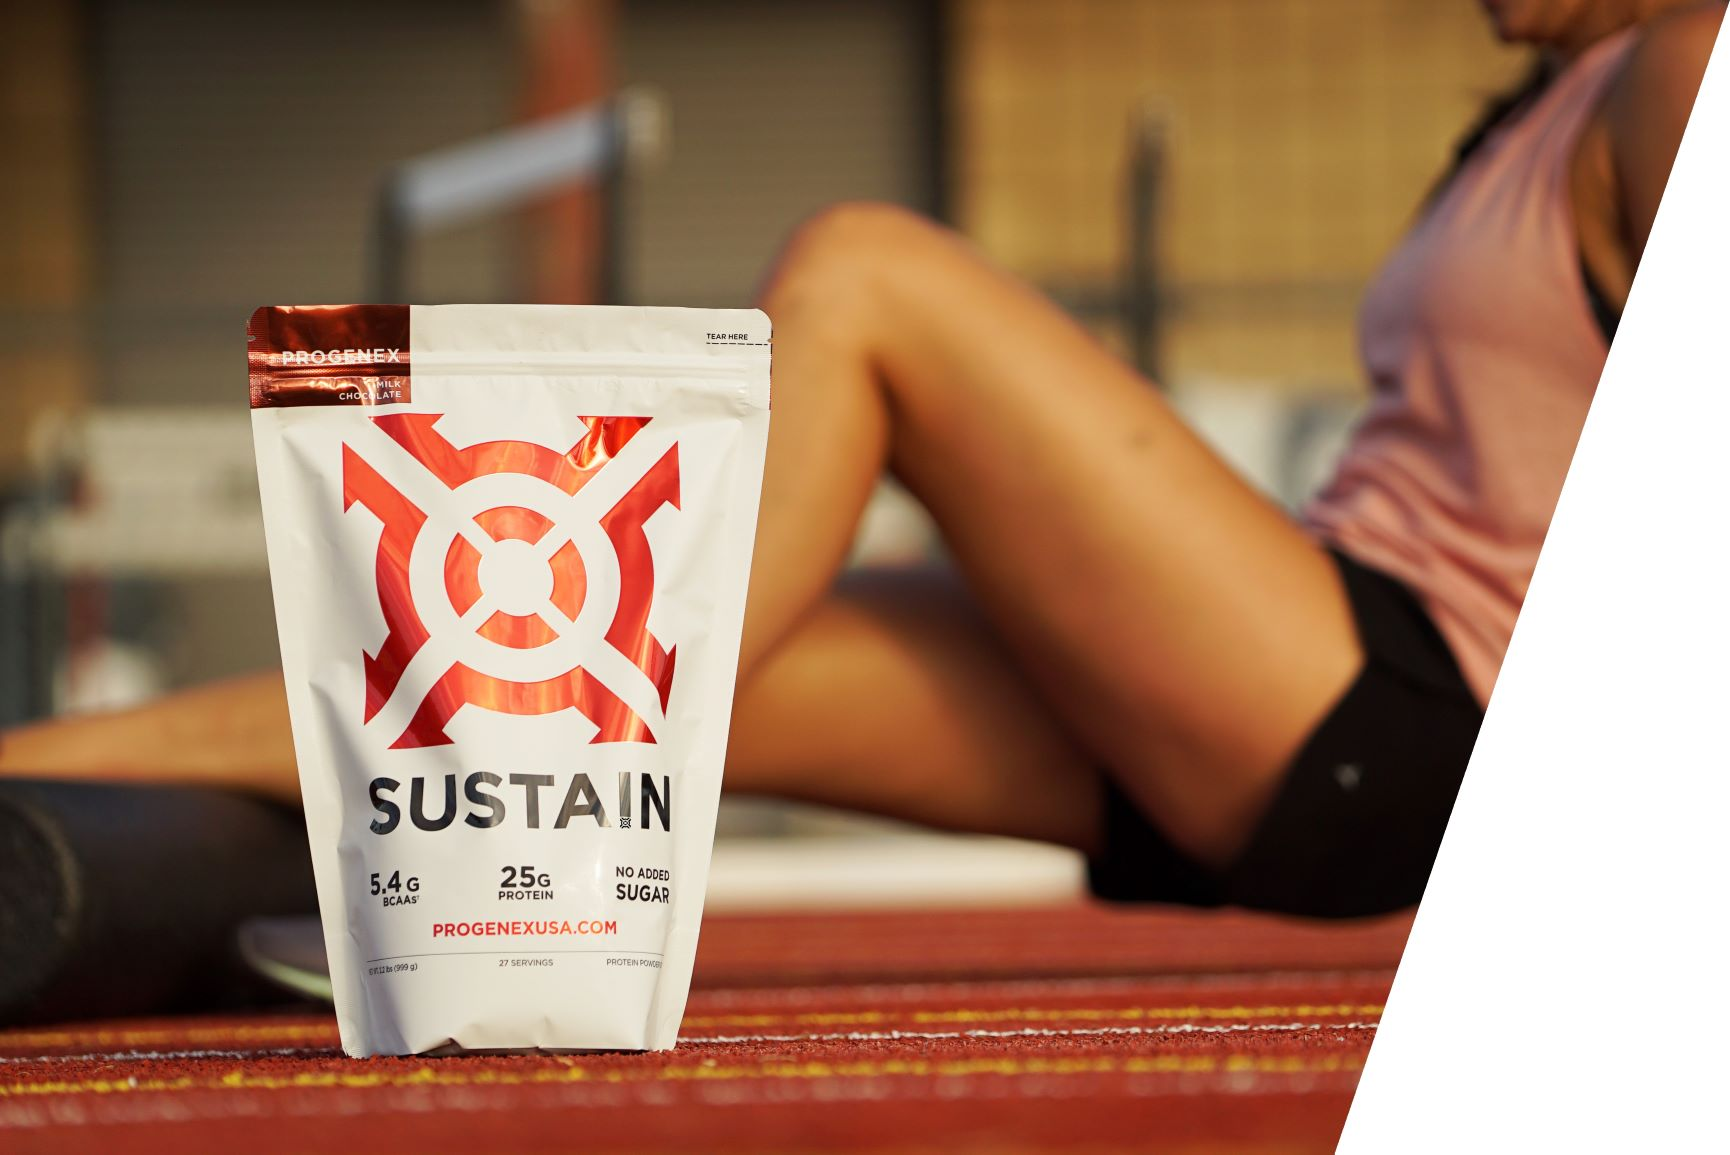 Protenex_whey_protein_isolate_Sustain_next_to_female_athlete_recovering_from_running_on_the_track